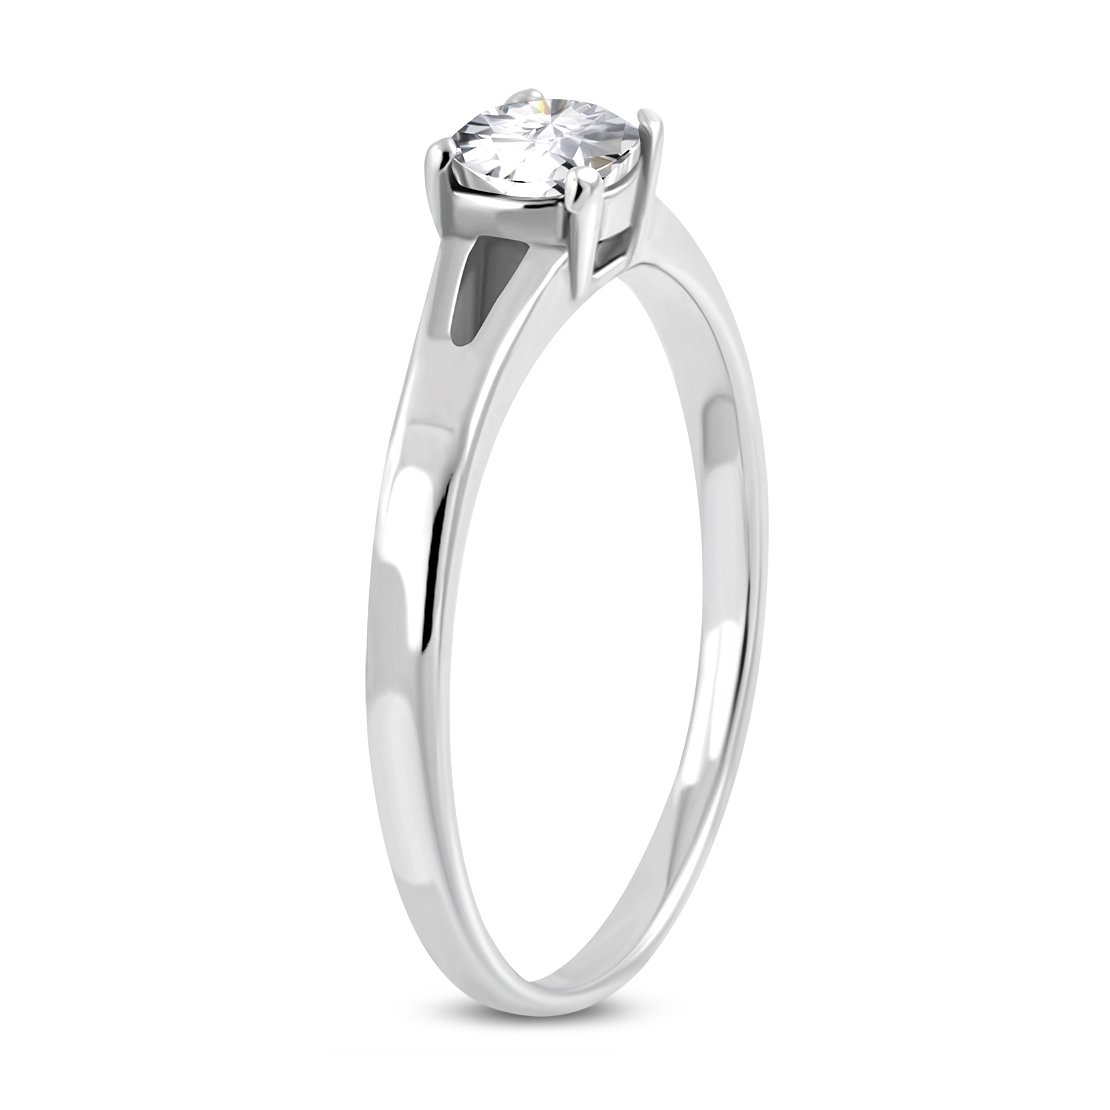 Stainless Steel Prong-Set Circle Engagement Ring with Clear CZ